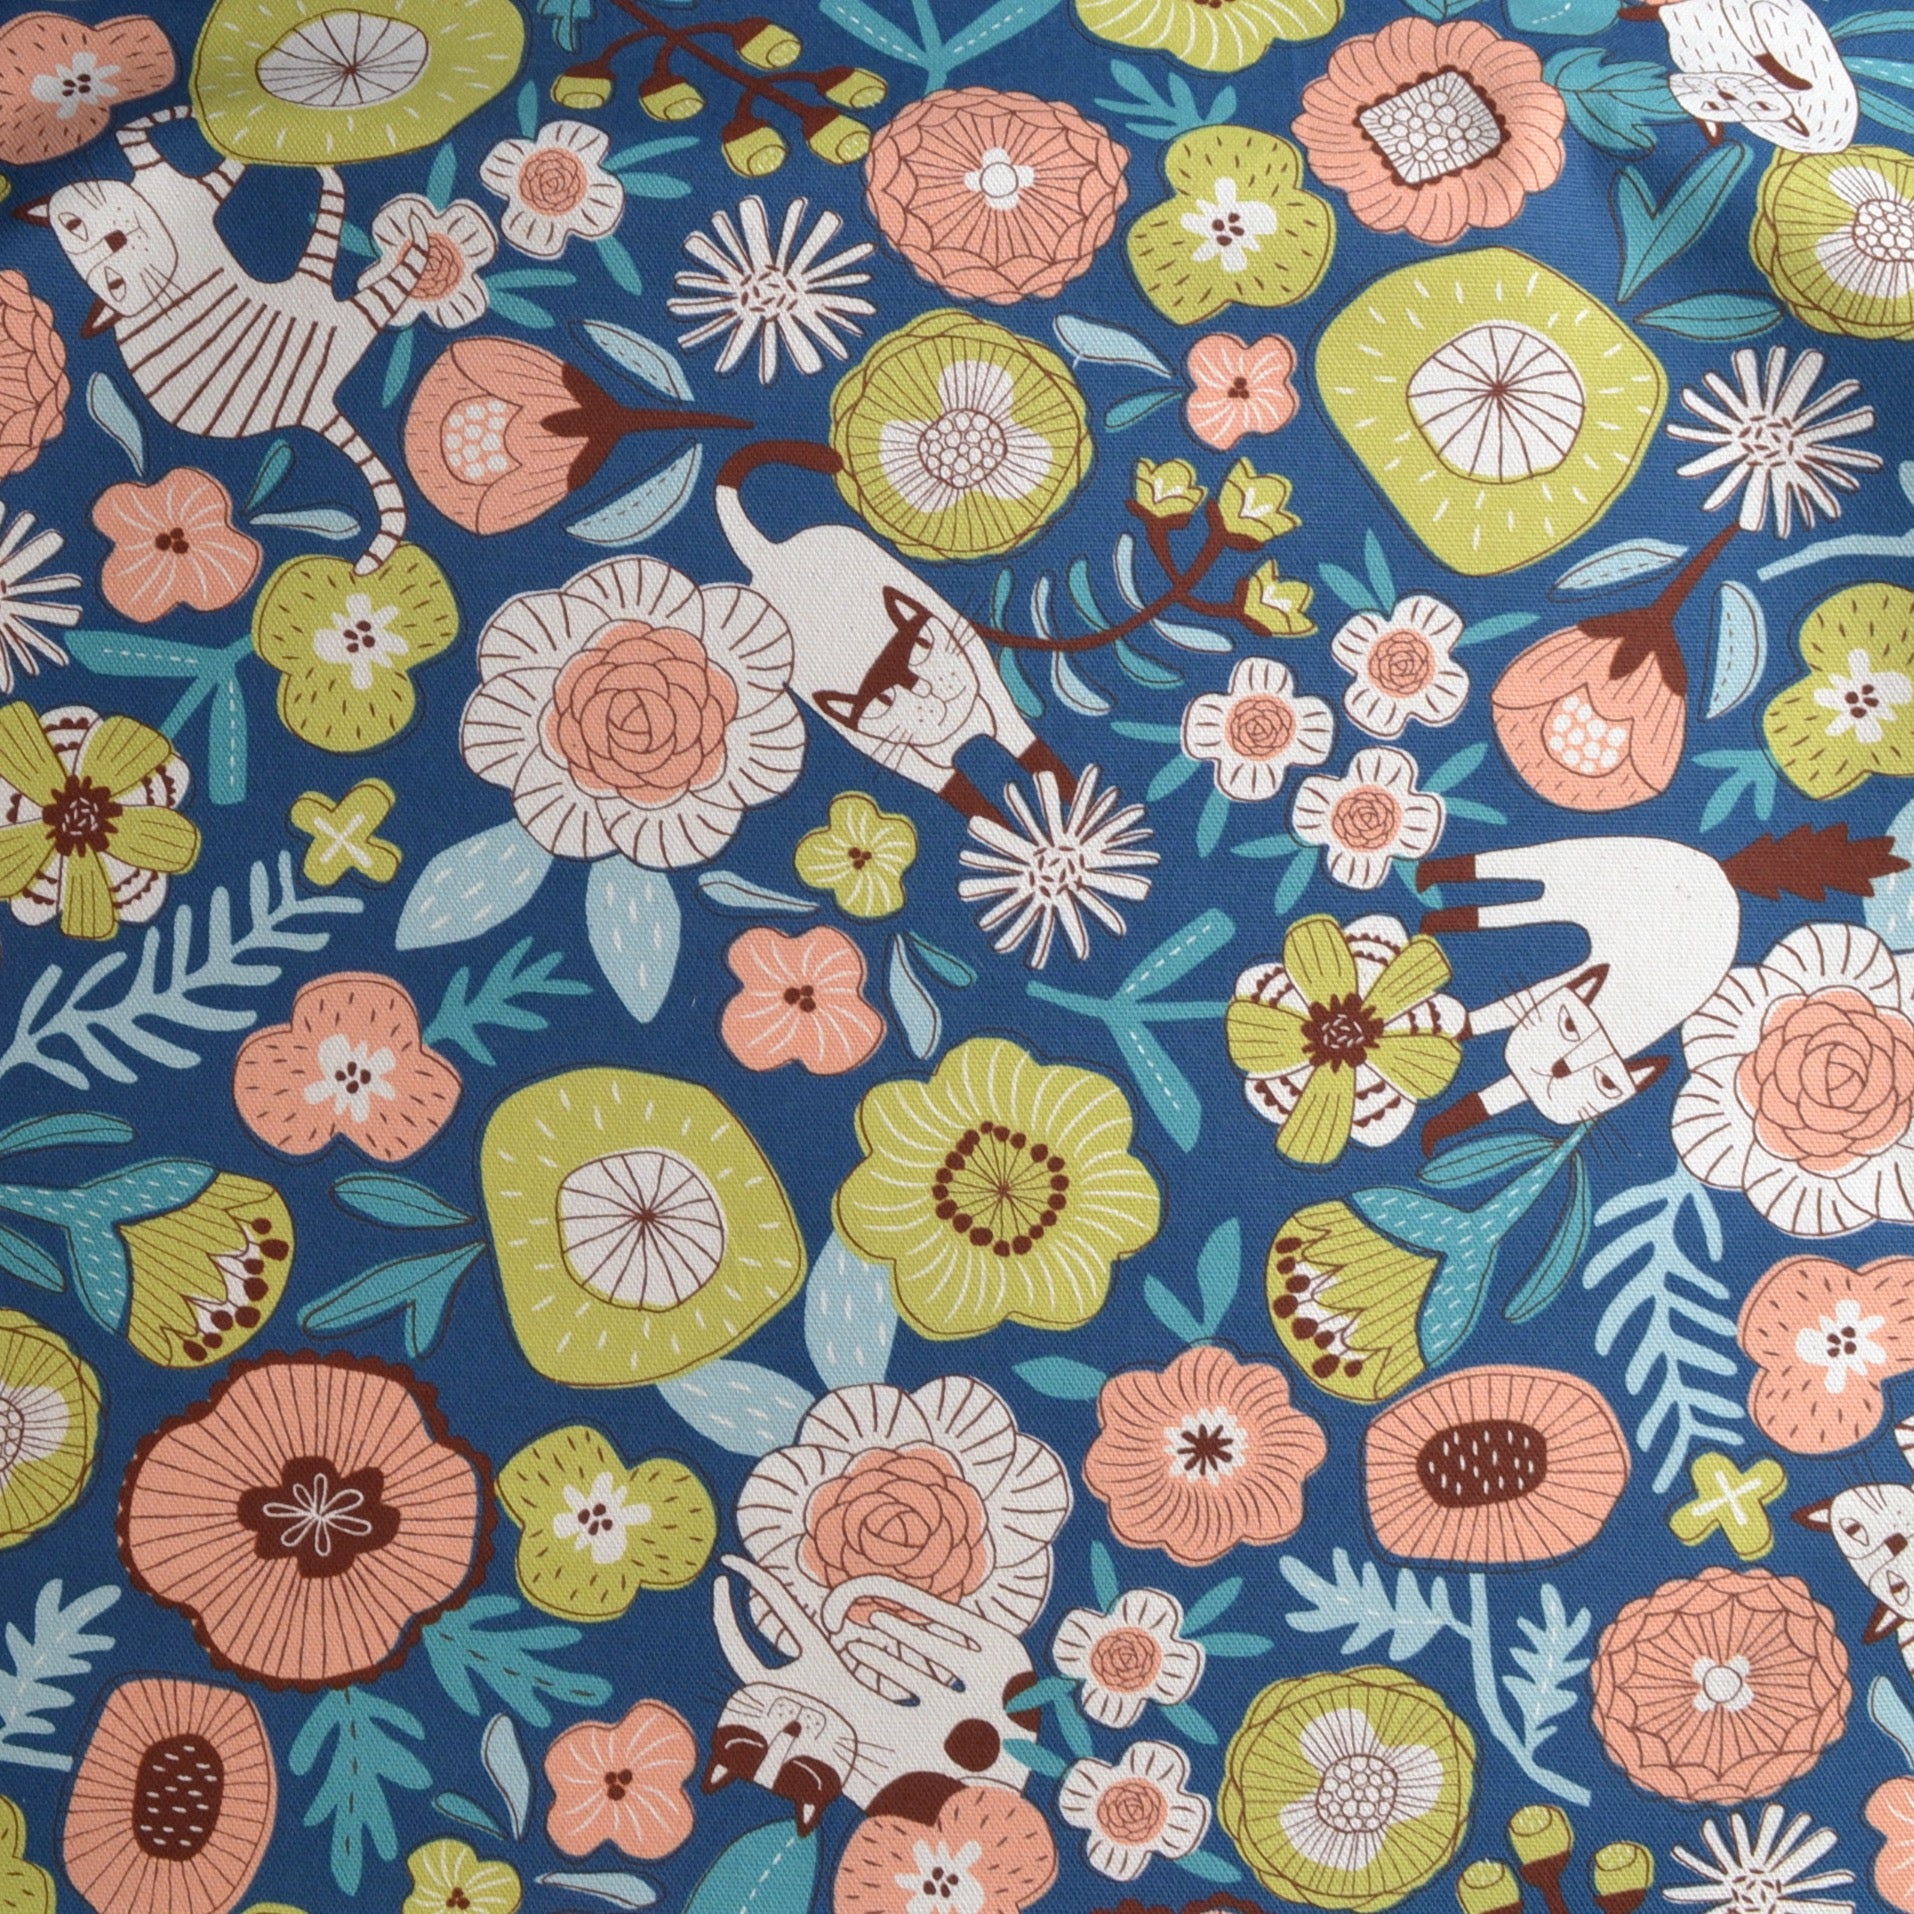 Stylised Cats & Flowers on Cotton Fabric